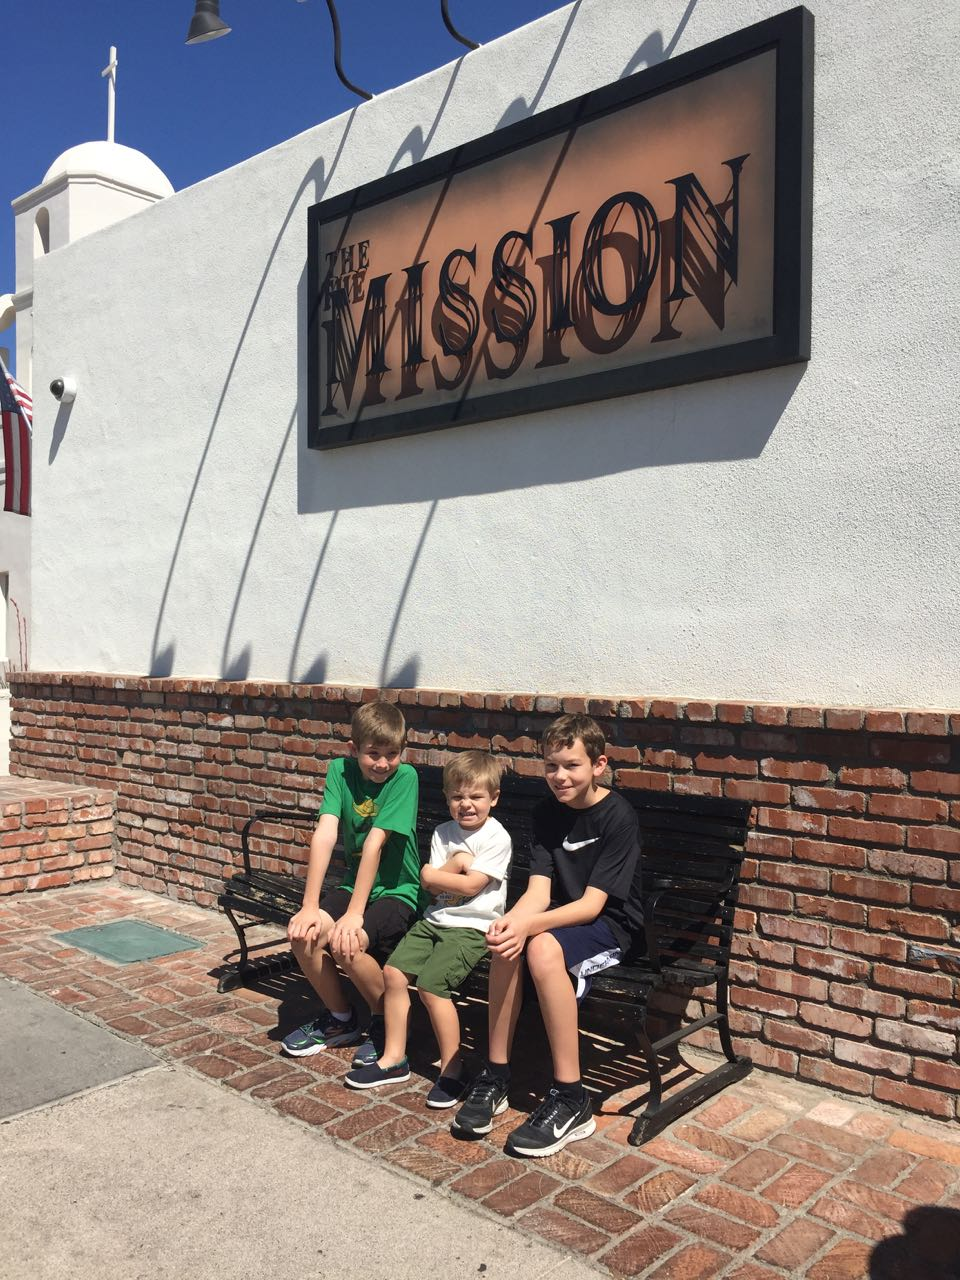 The Mission Old Town Scottsdale Arizona